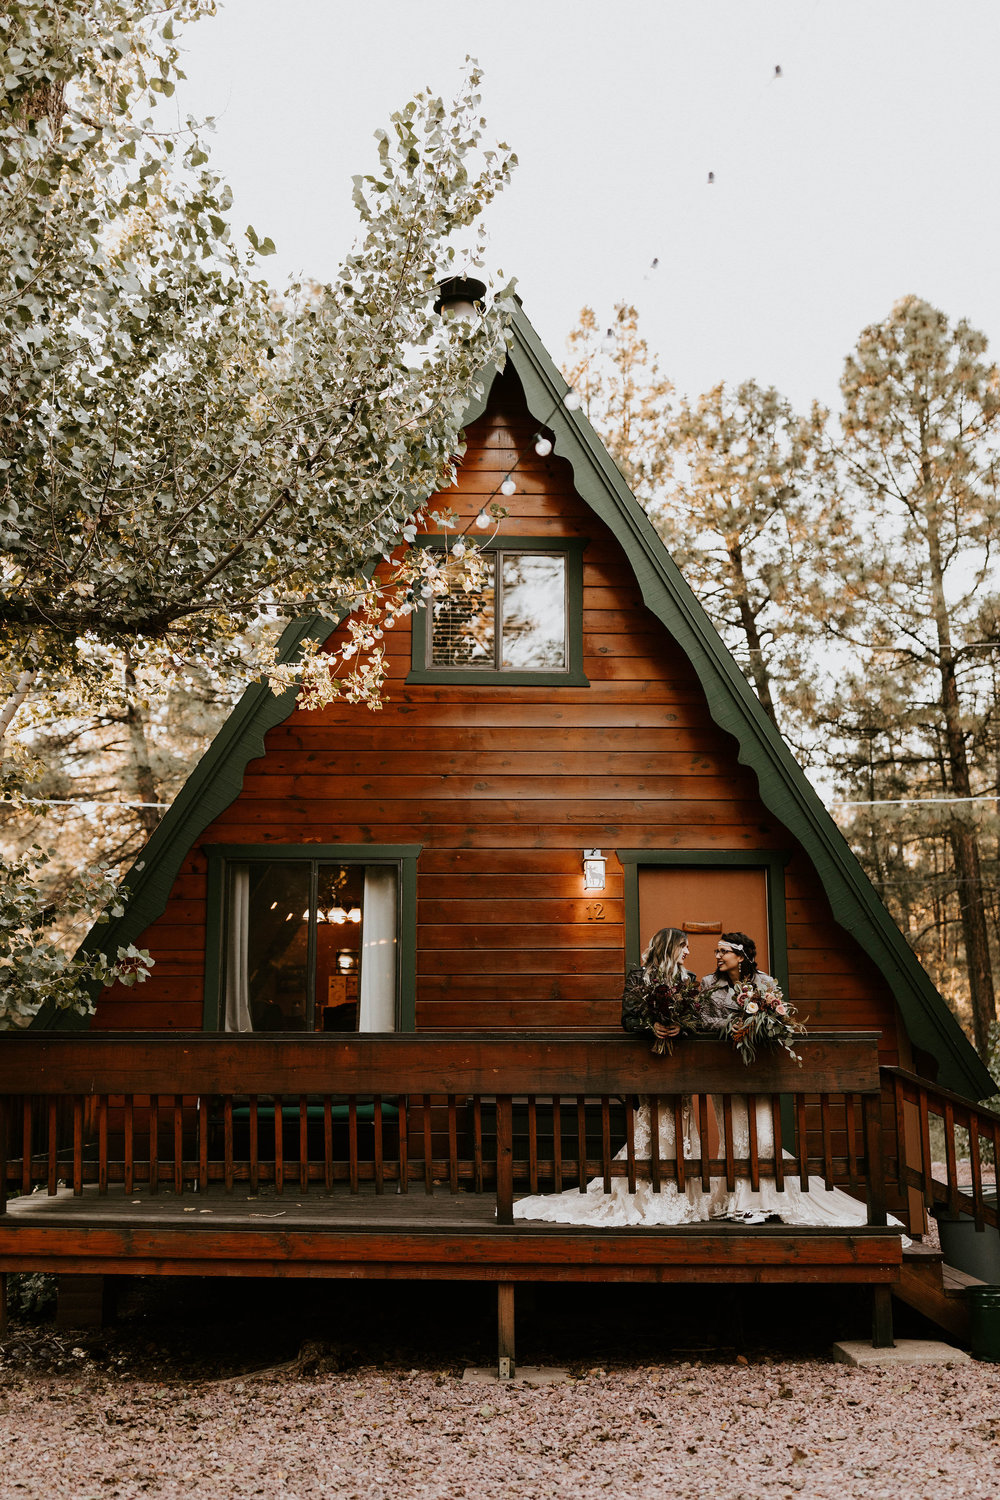 A-frame Cabins on Strawberry Hill in Arizona